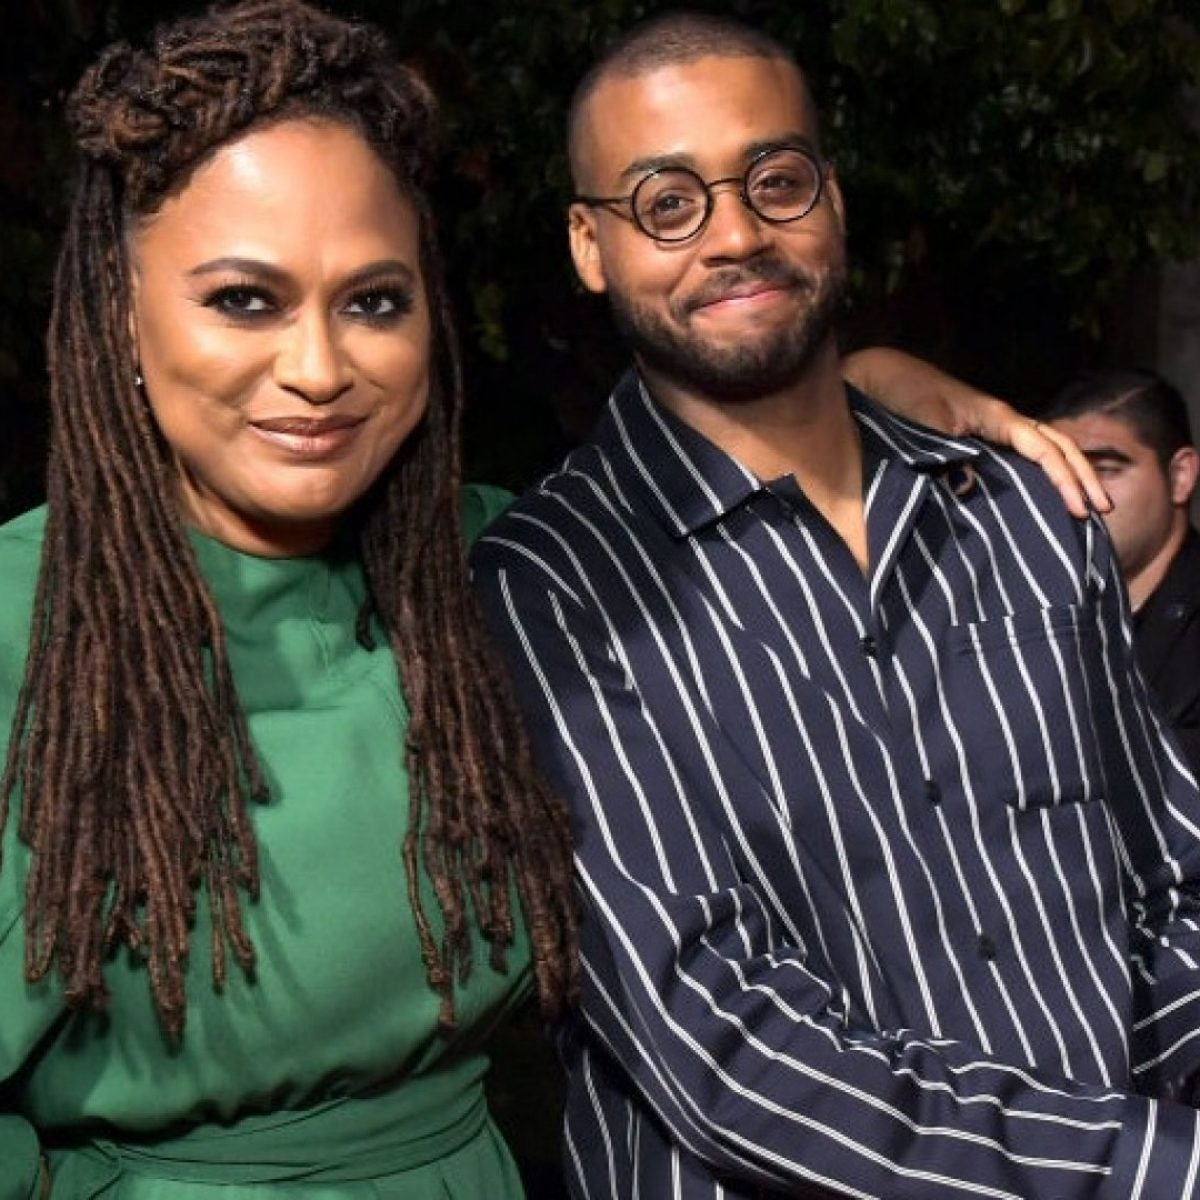 Ava DuVernay On Rooting For Oscar-Nominated Composer Kris Bowers: 'I Want Everything For Him'